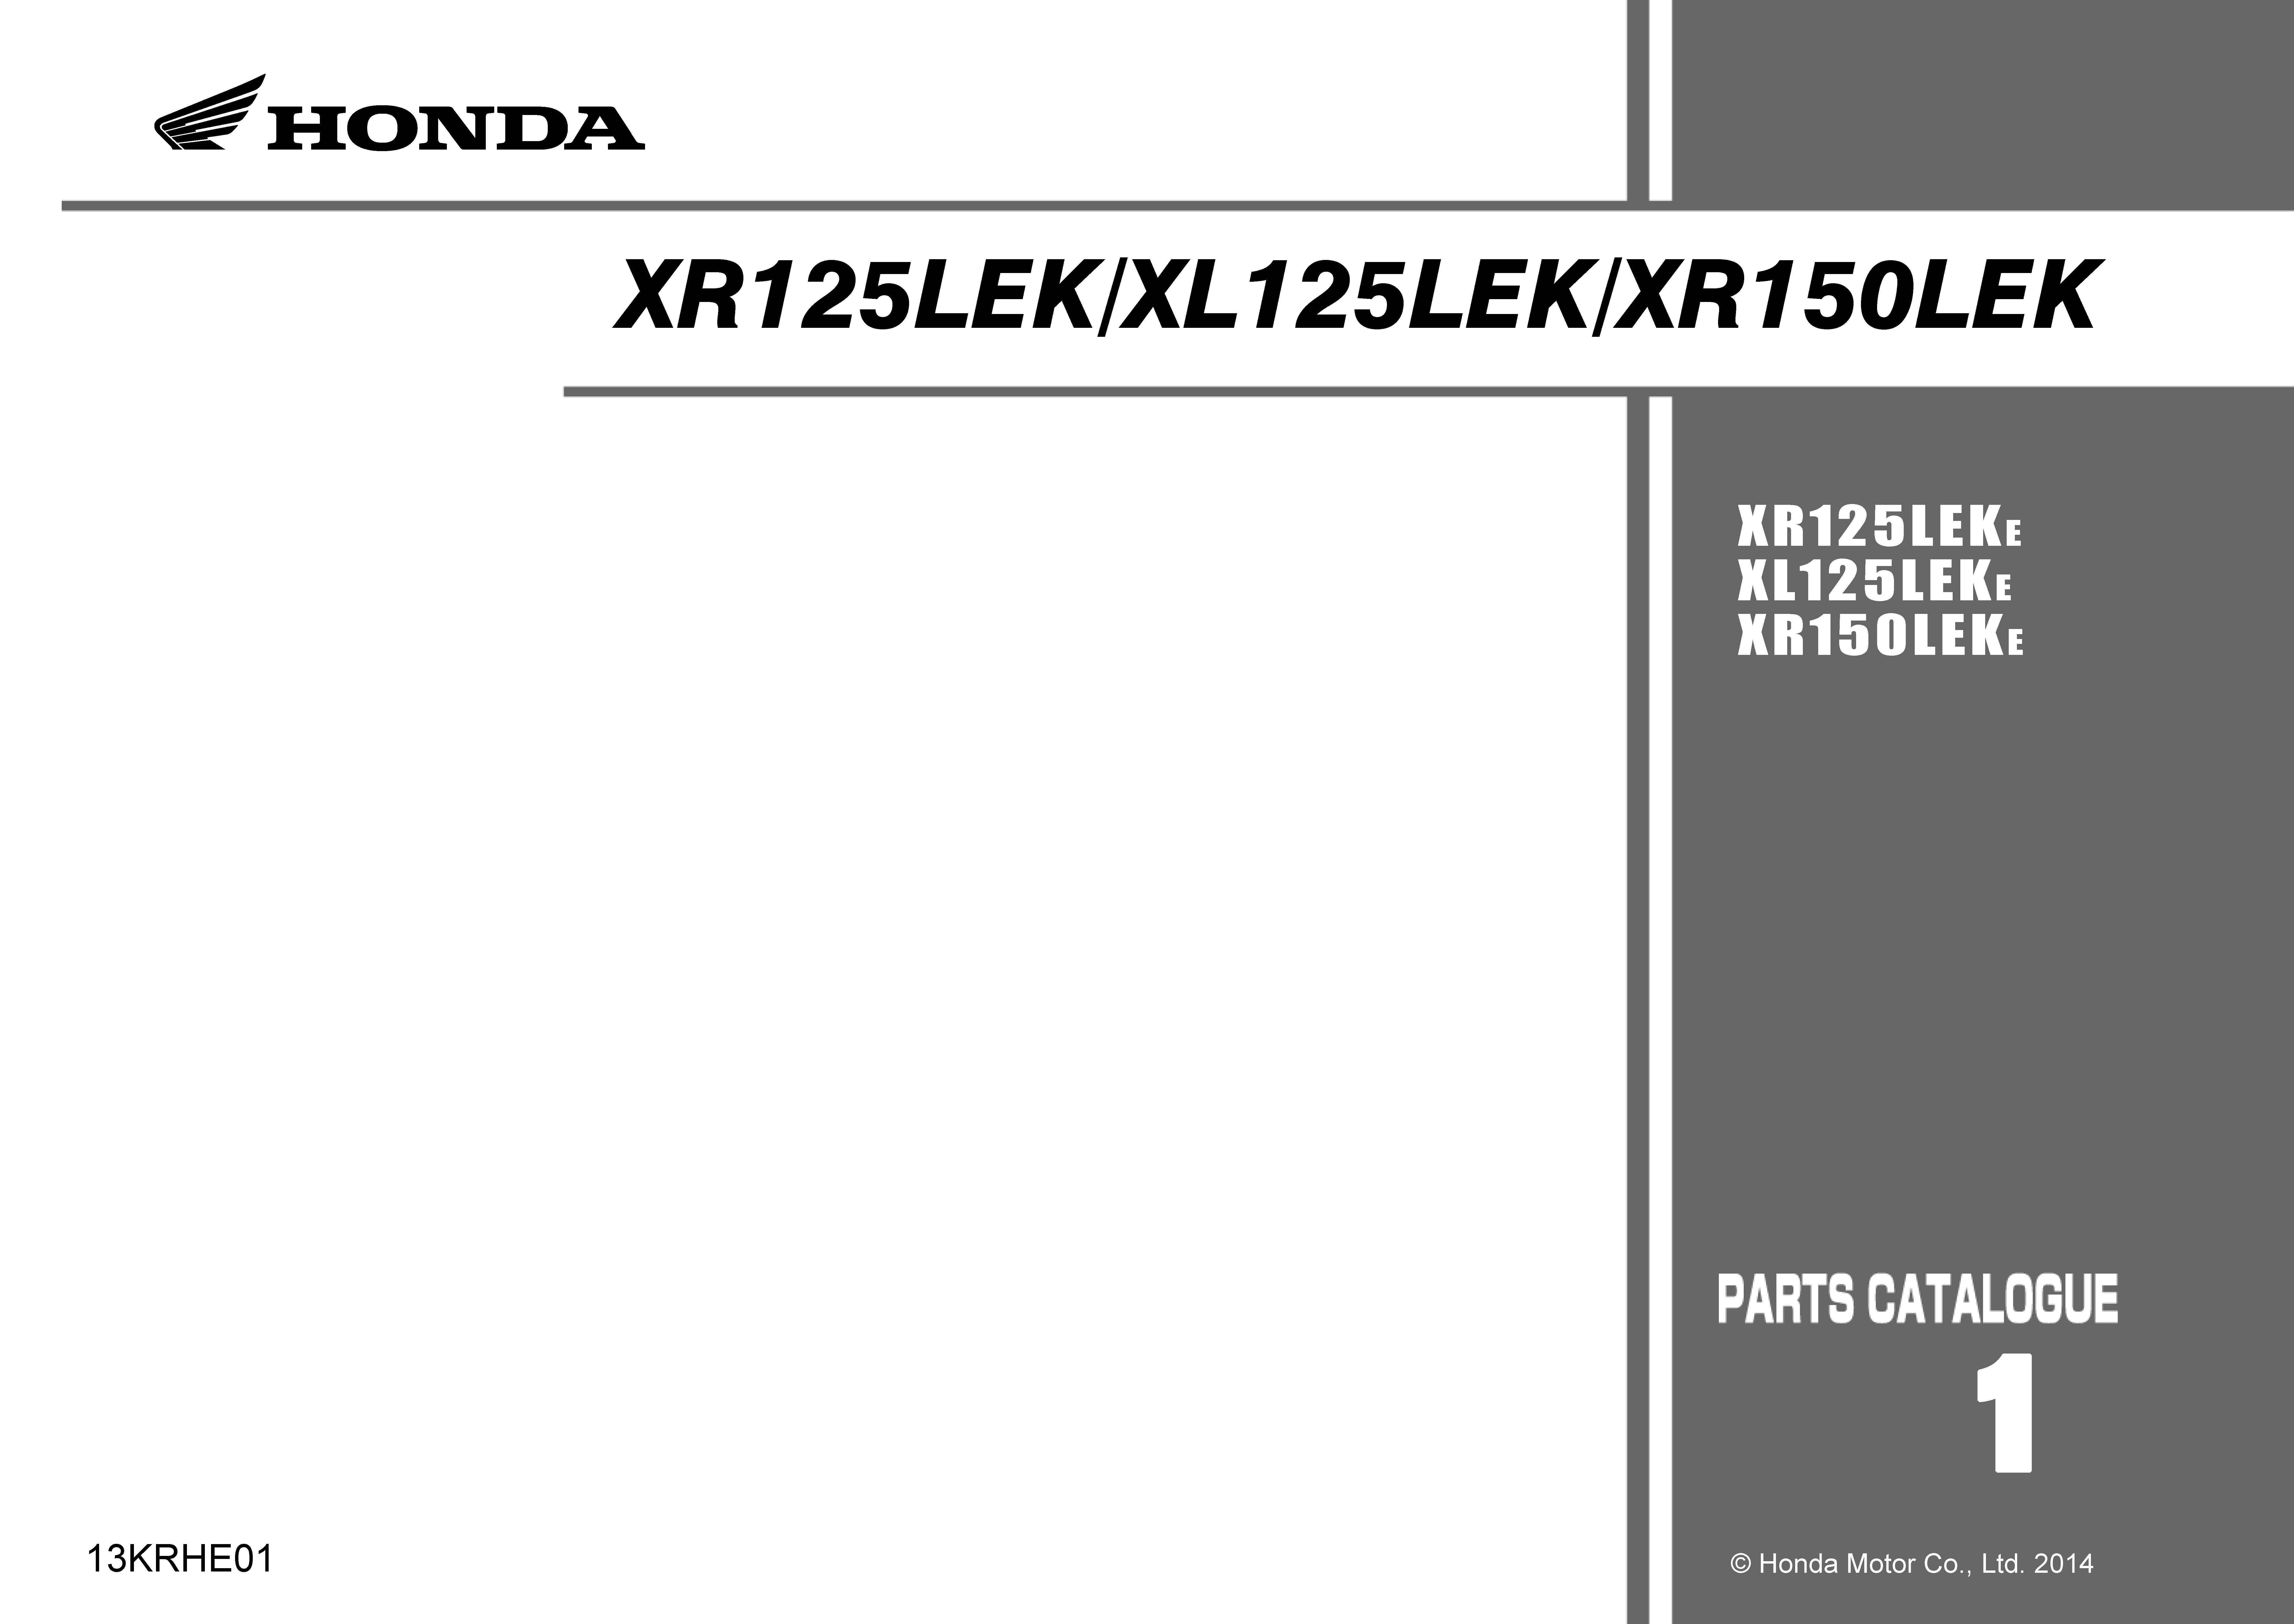 Parts list for Honda XL125LEK (2014)